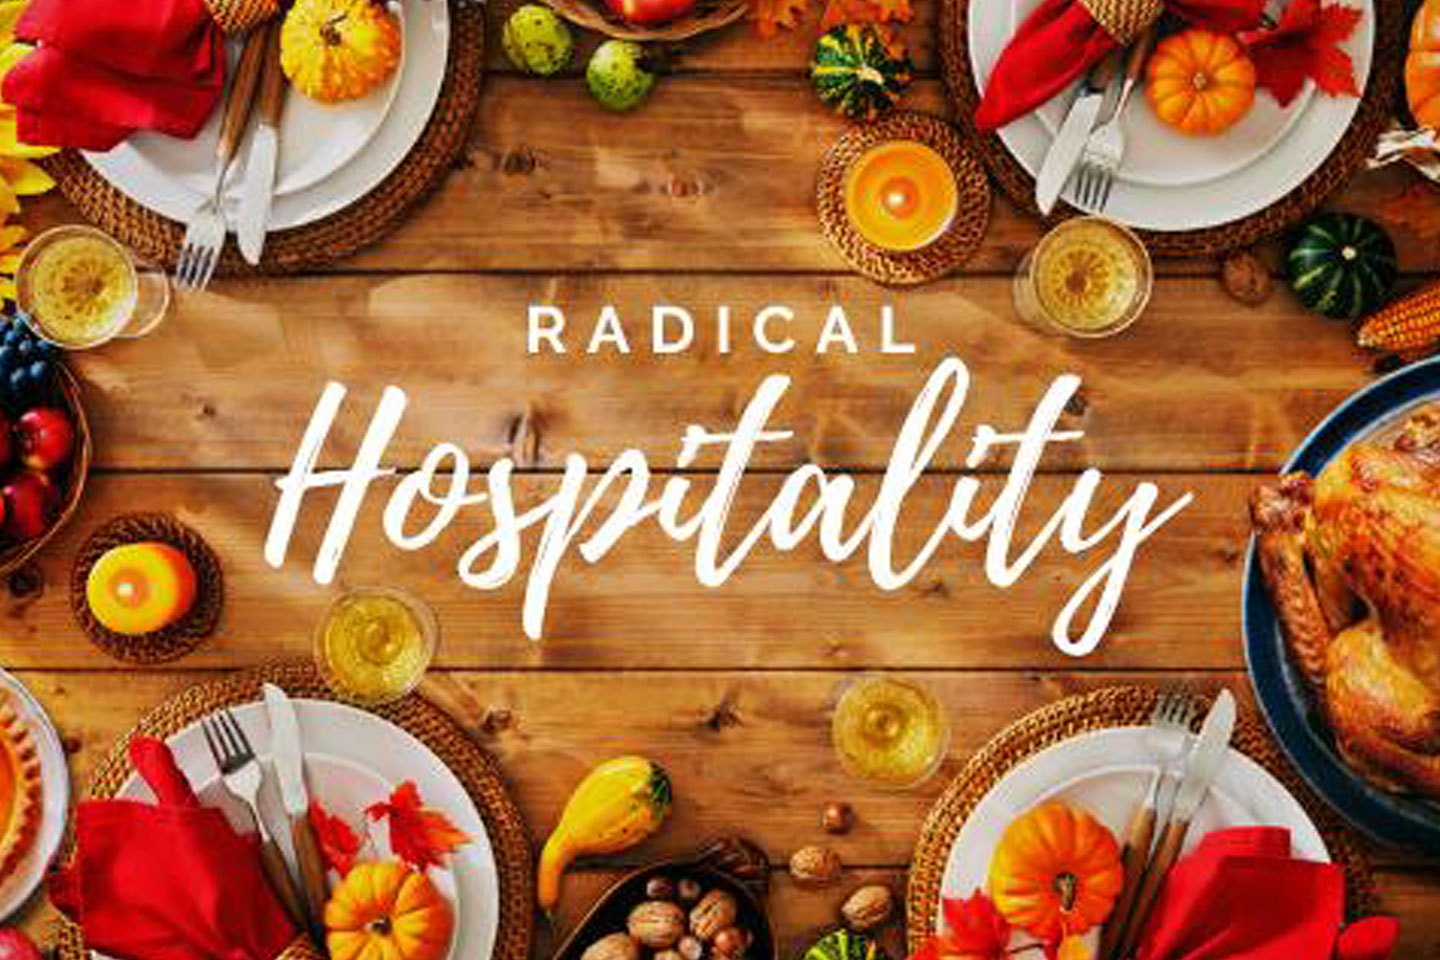 radical-hospitality-event-thumb.jpg